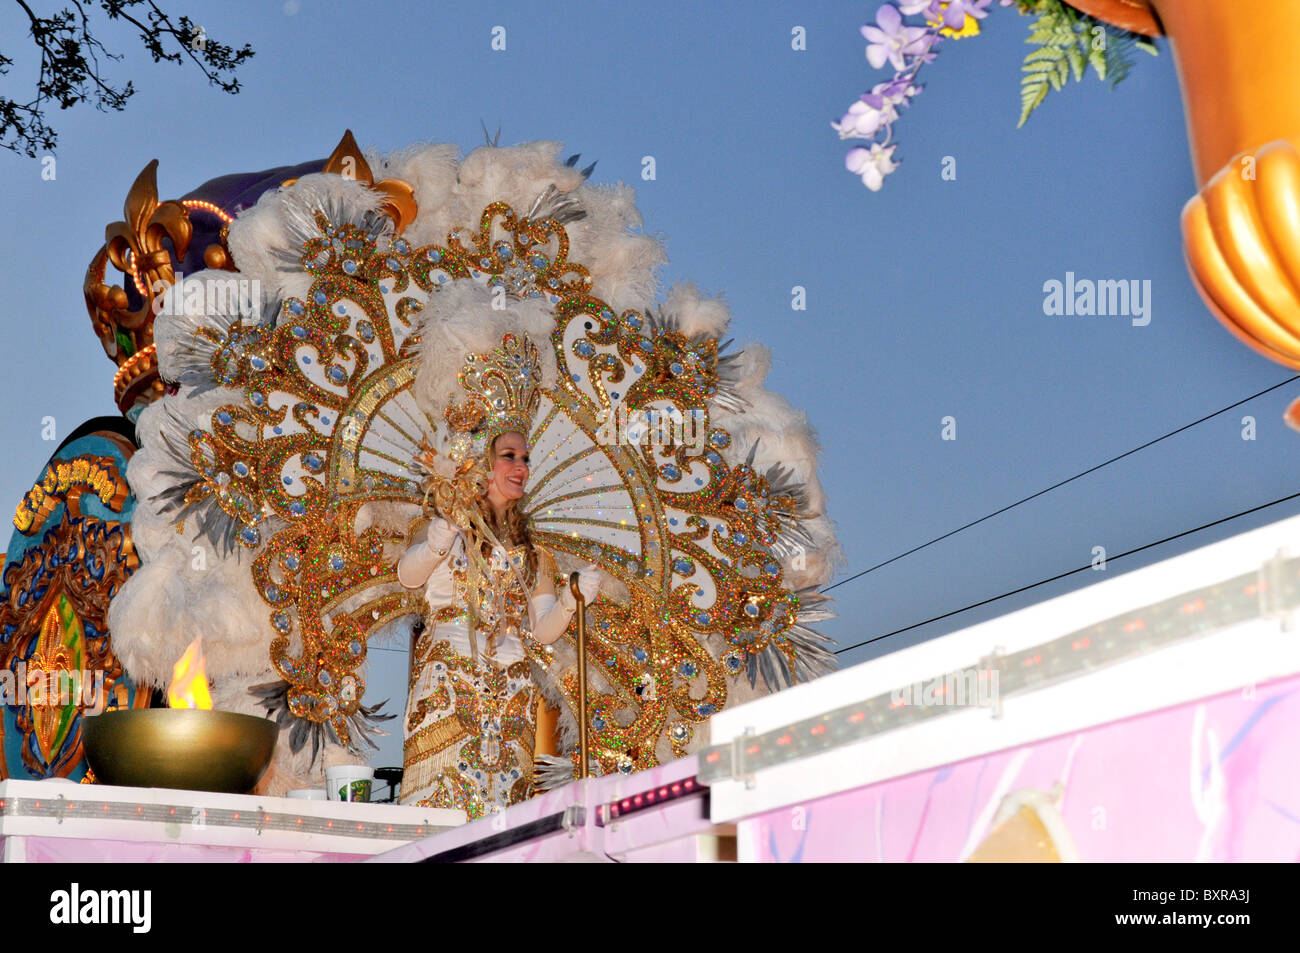 Beautifully costumed woman on float, Endymion Parade, Mardi Gras, New Orleans, Louisiana - Stock Image